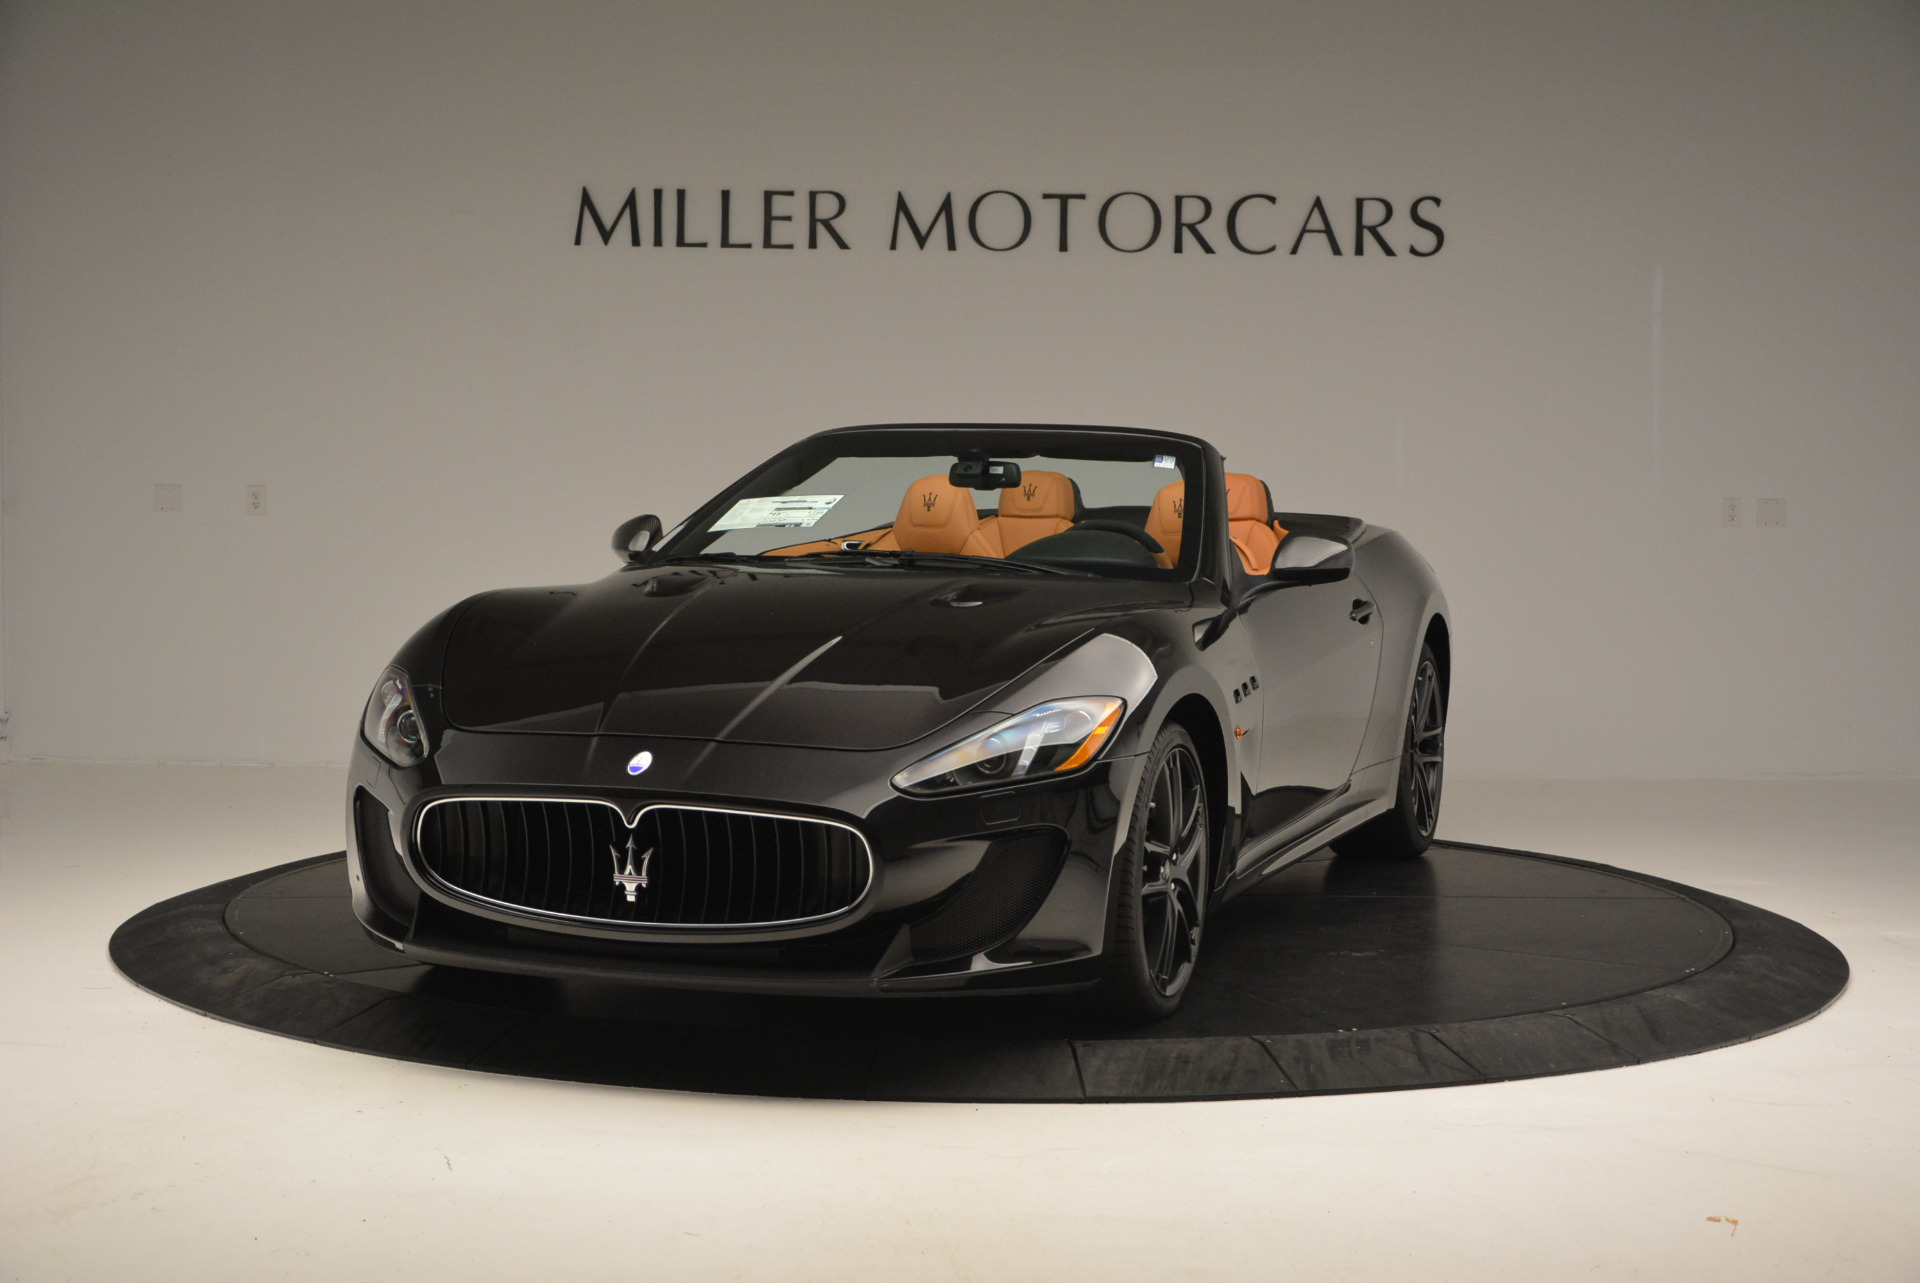 New 2017 Maserati GranTurismo MC CONVERTIBLE for sale Sold at Alfa Romeo of Westport in Westport CT 06880 1